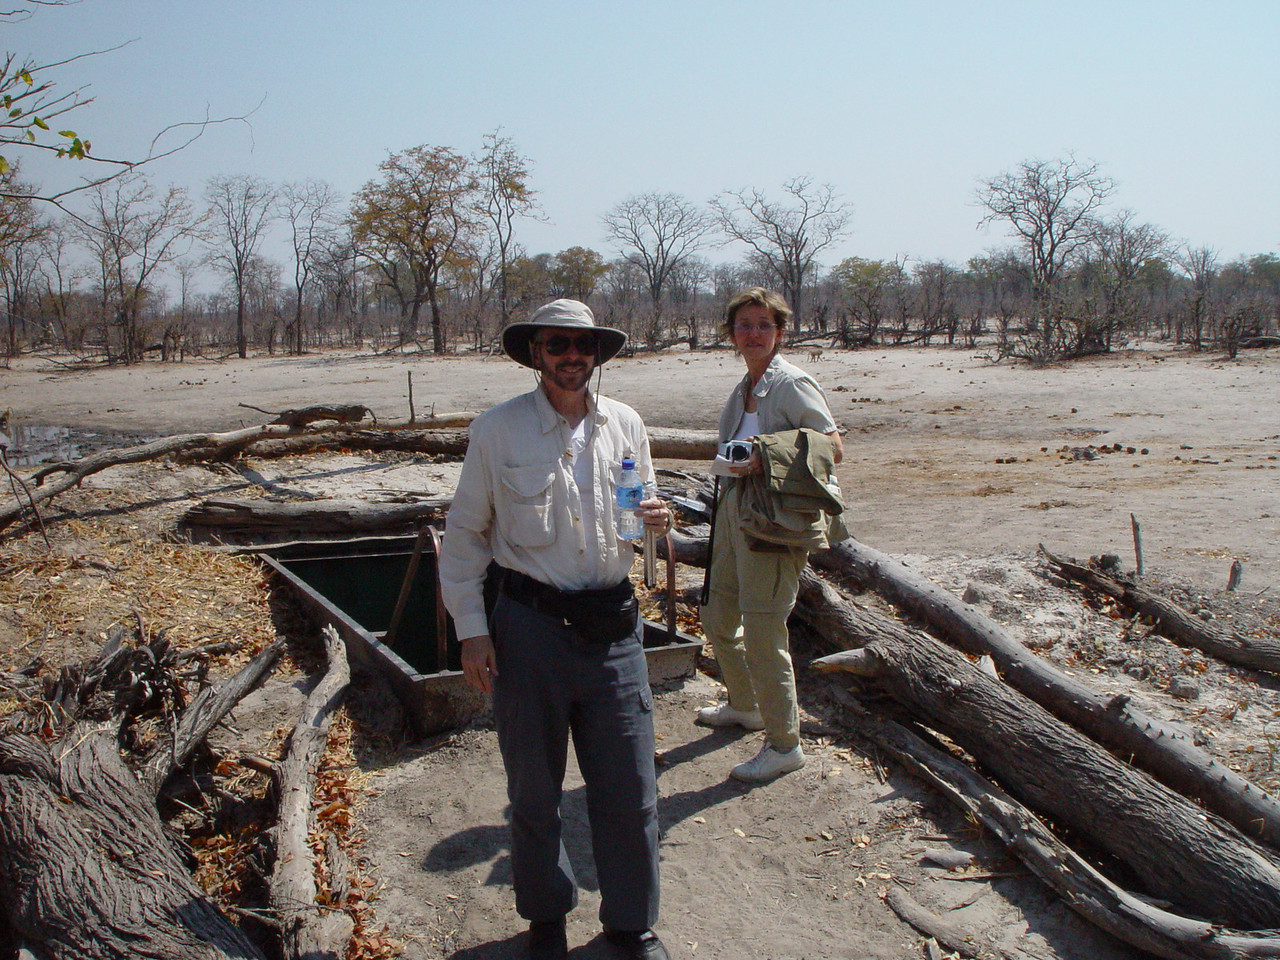 Going into the Elephant hide